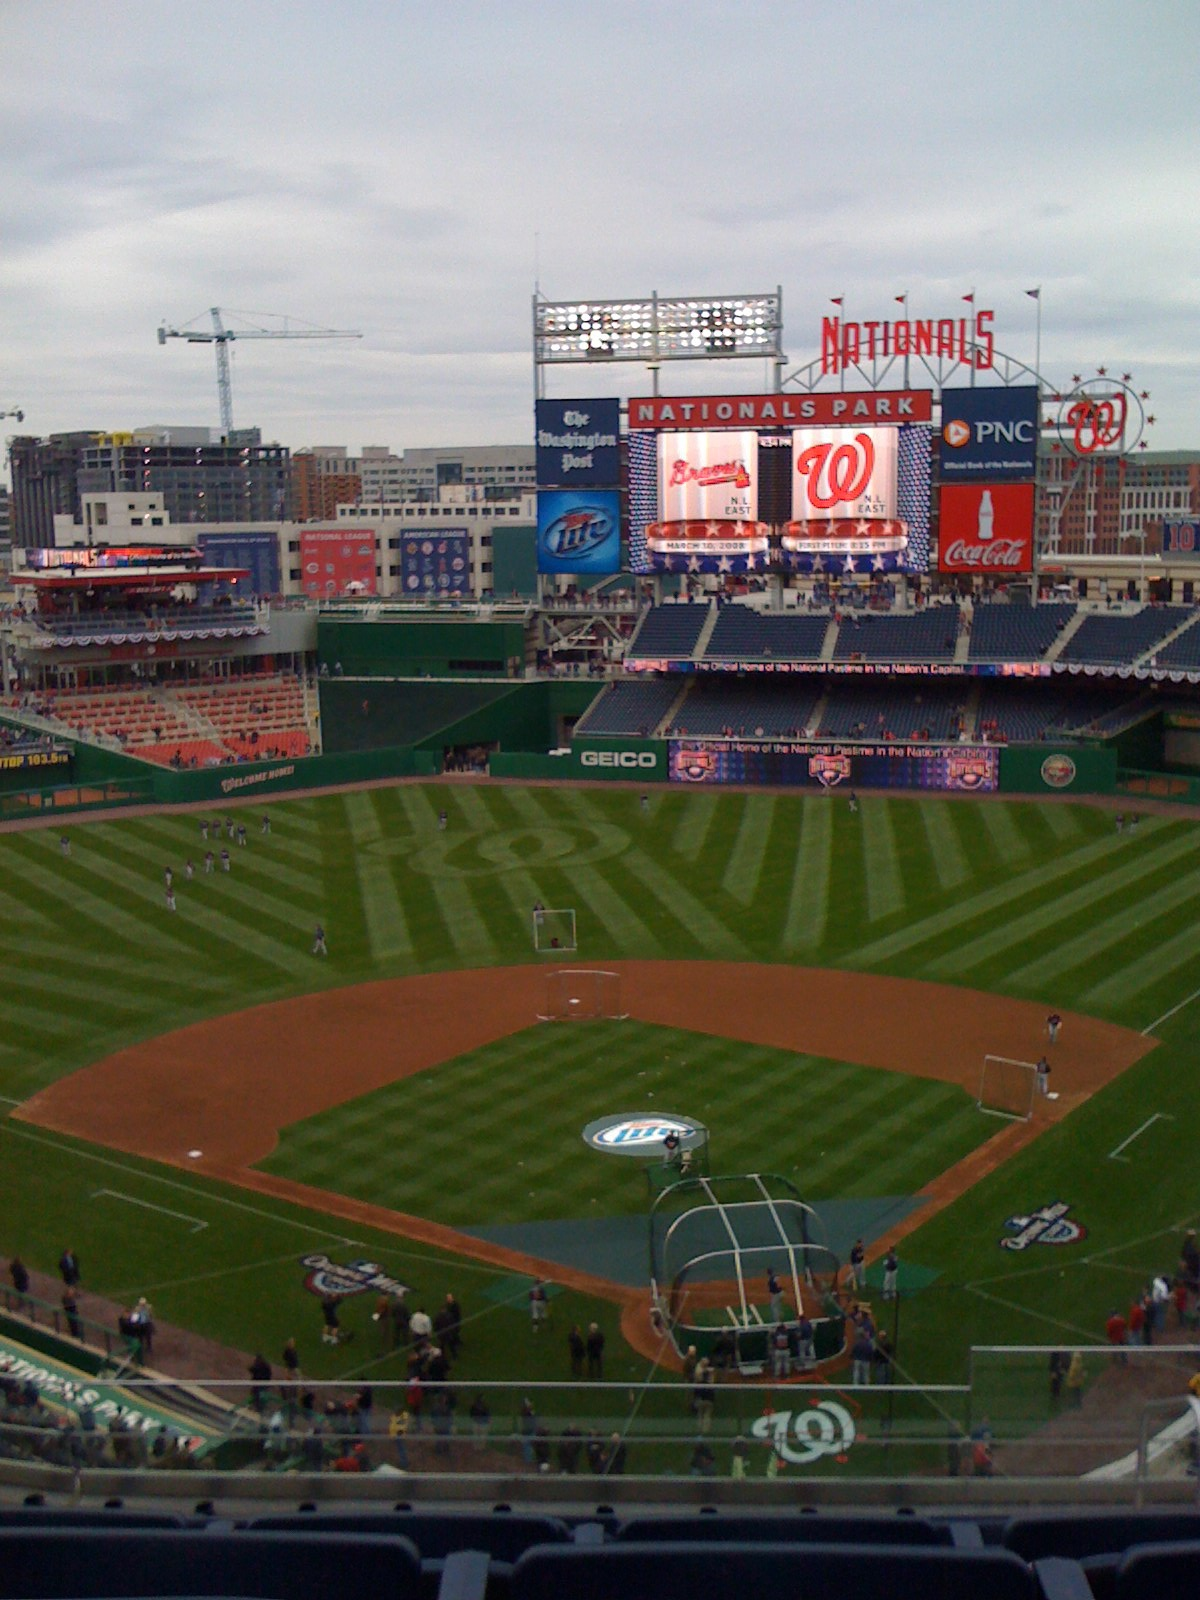 Nationals Park - BP